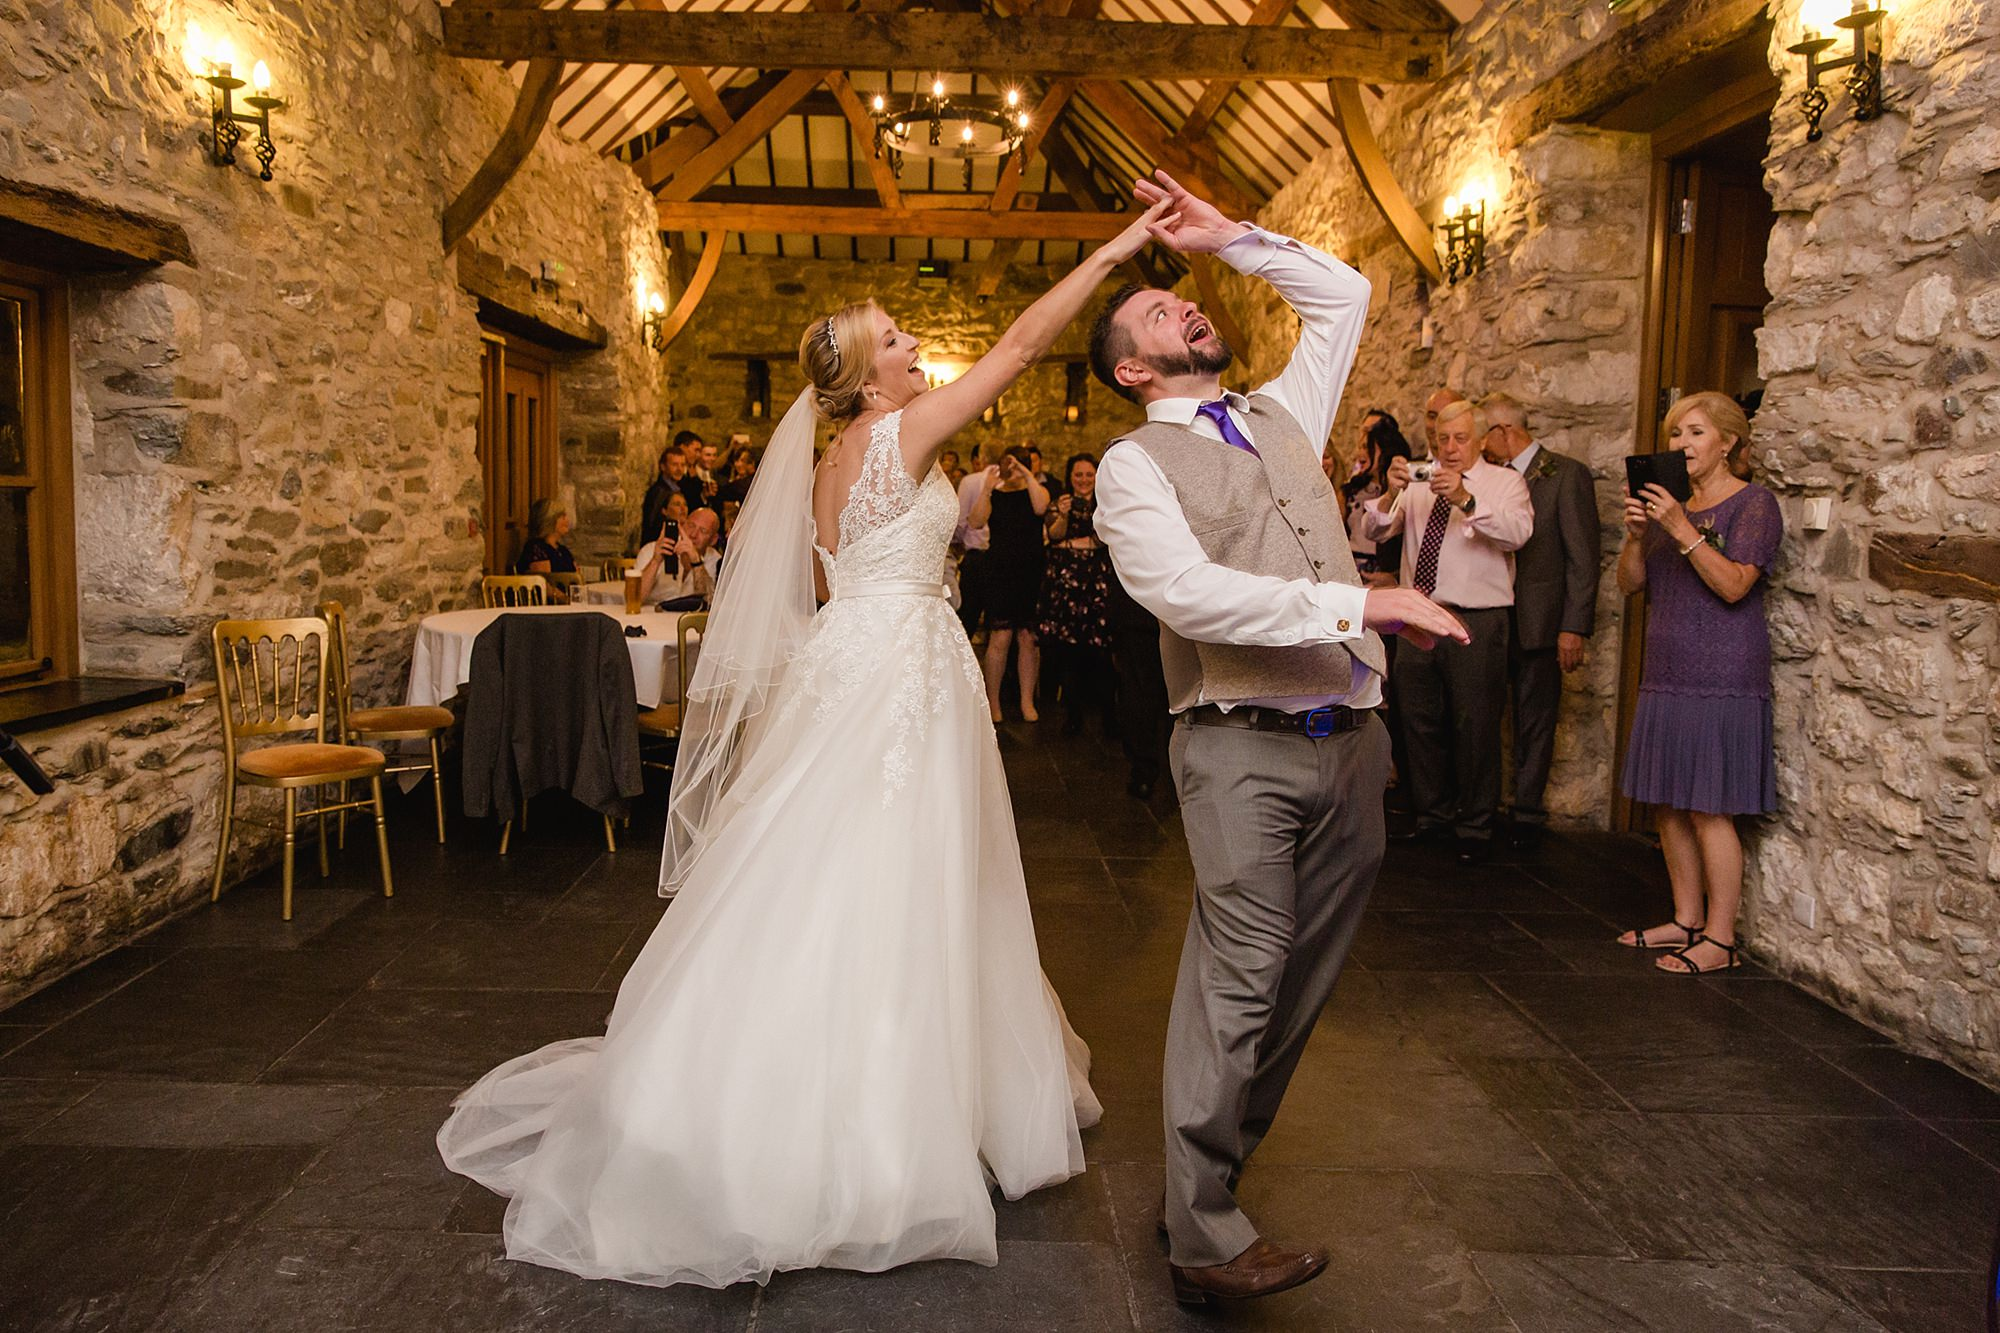 A fun wedding picture of bride attempting to twirl groom